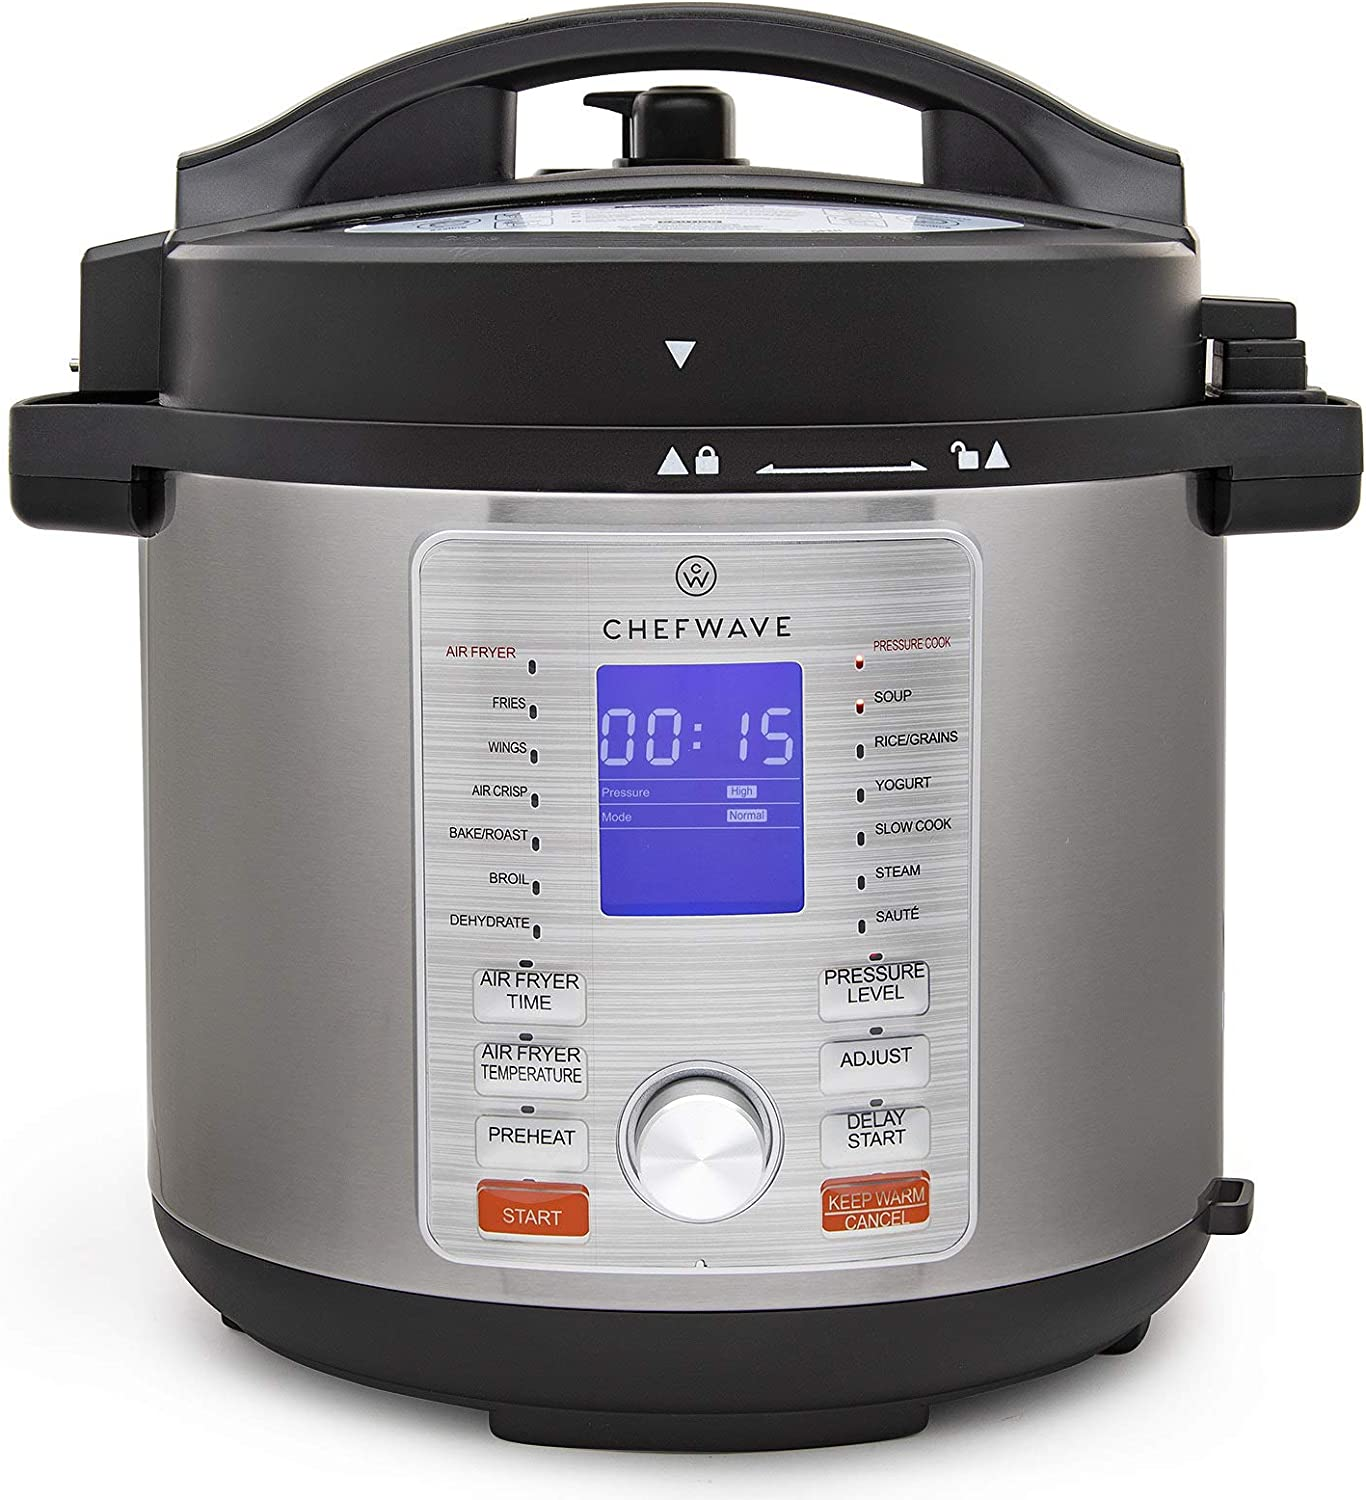 ChefWave 12-in-1 Electric Pressure Cooker 6-Quart